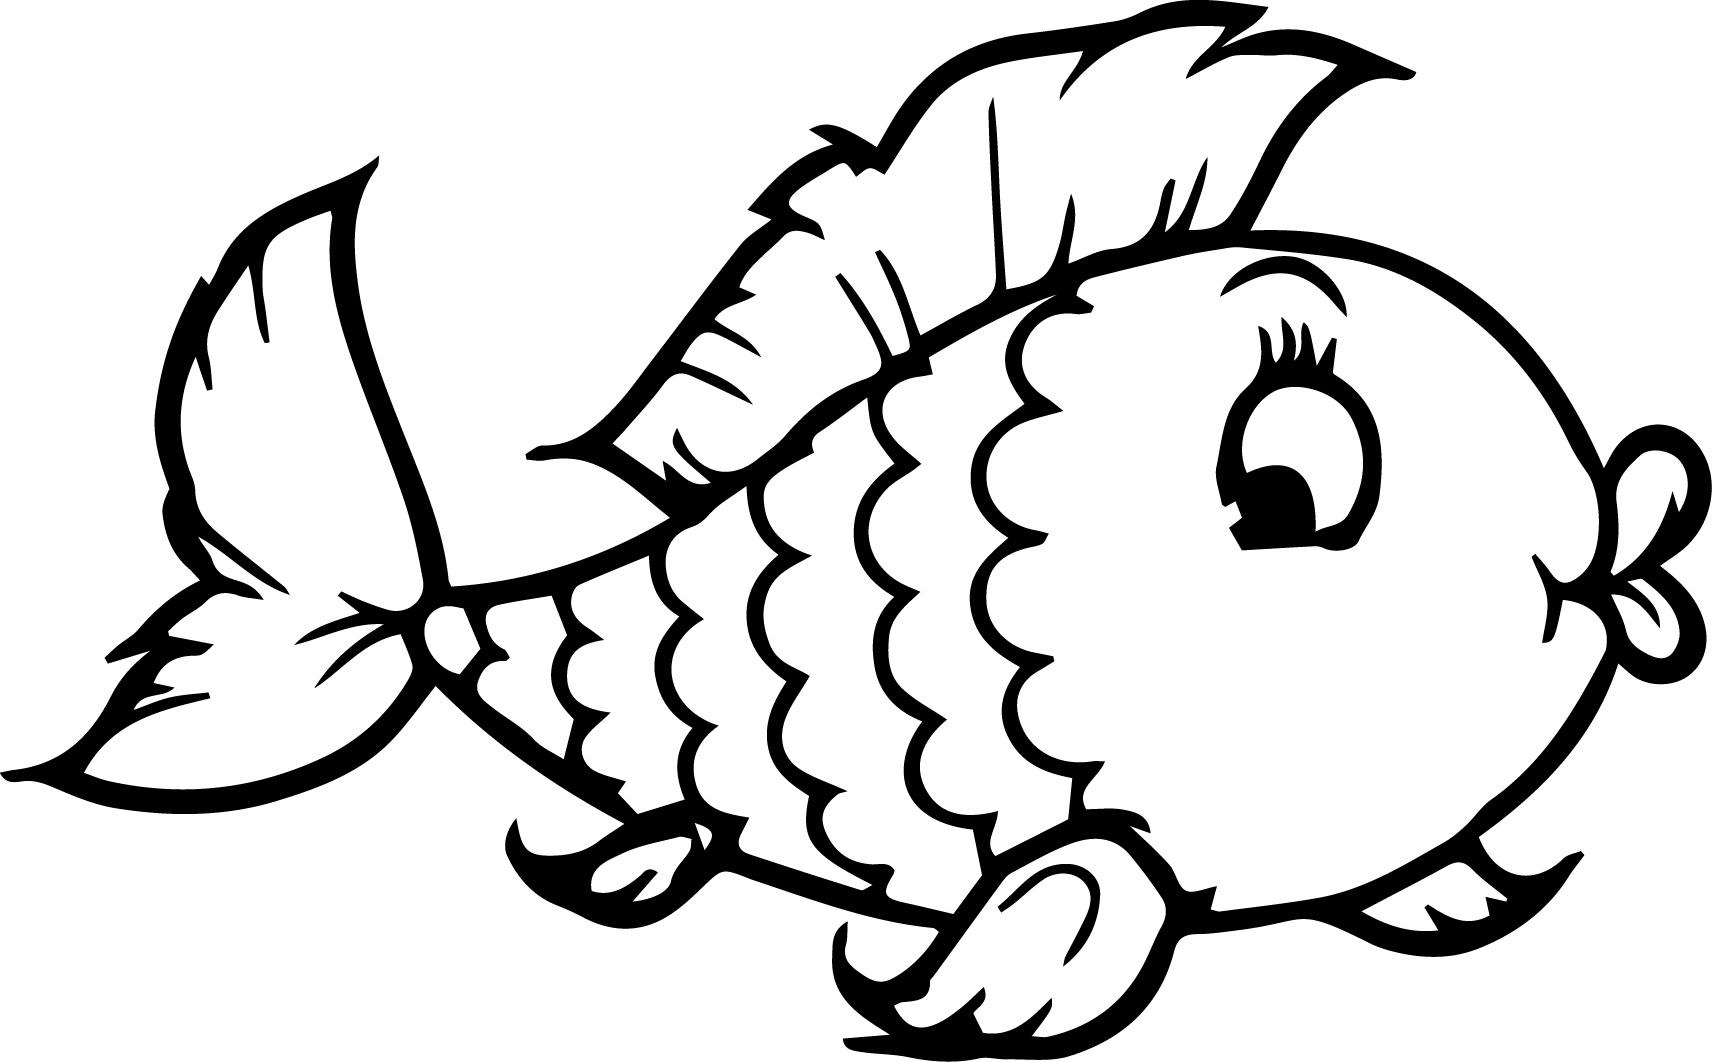 1712x1062 Preschool Coloring Sheet Py Cool Fish Coloring Pages